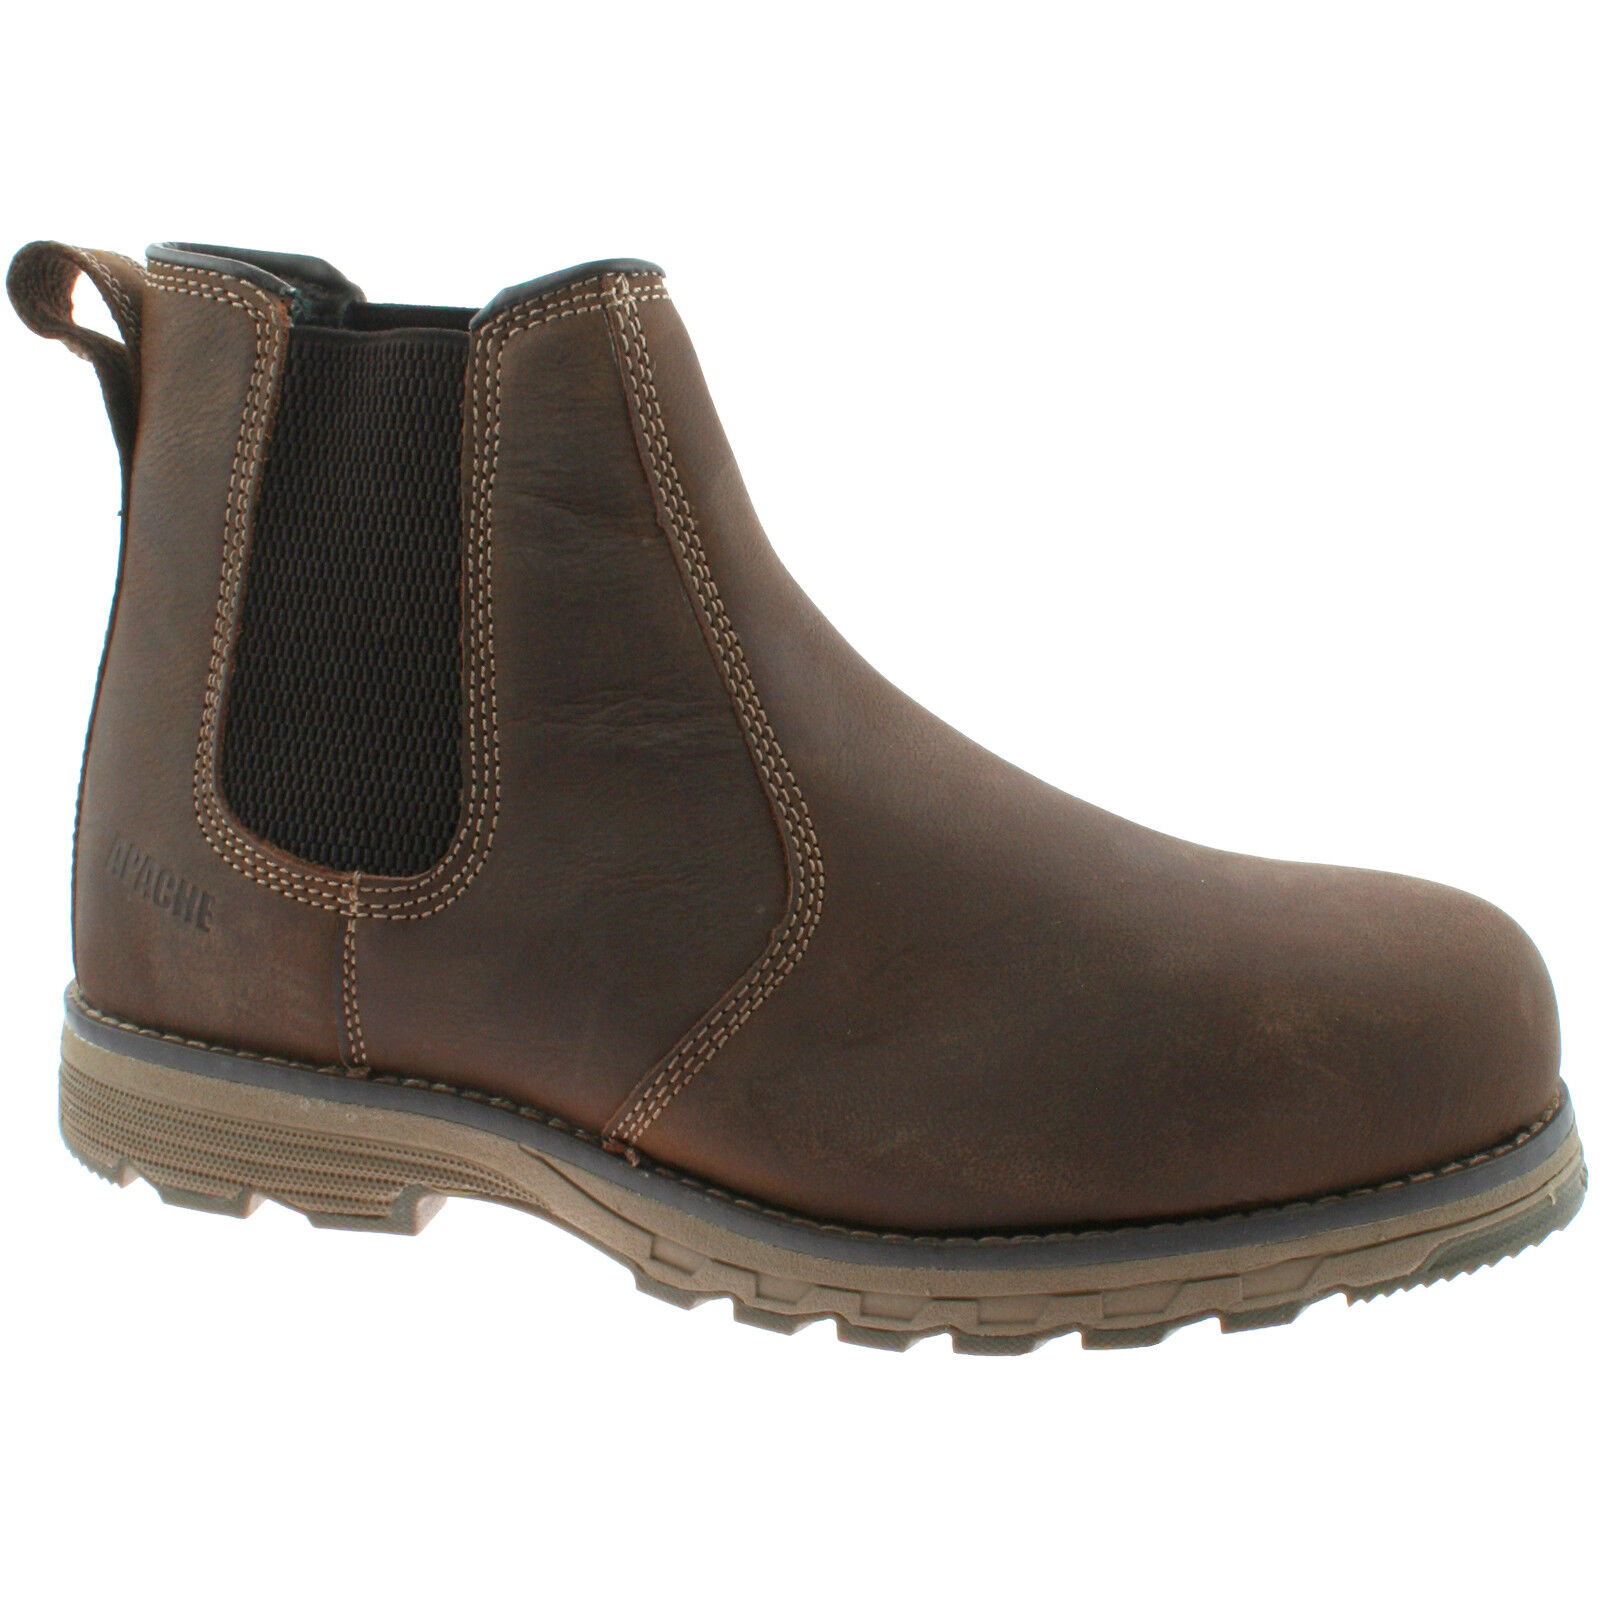 f77d8f23b1a Details about MENS APACHE FLYWEIGHT SAFETY BROWN NUBUCK LEATHER WATER  RESISTANT DEALER BOOT